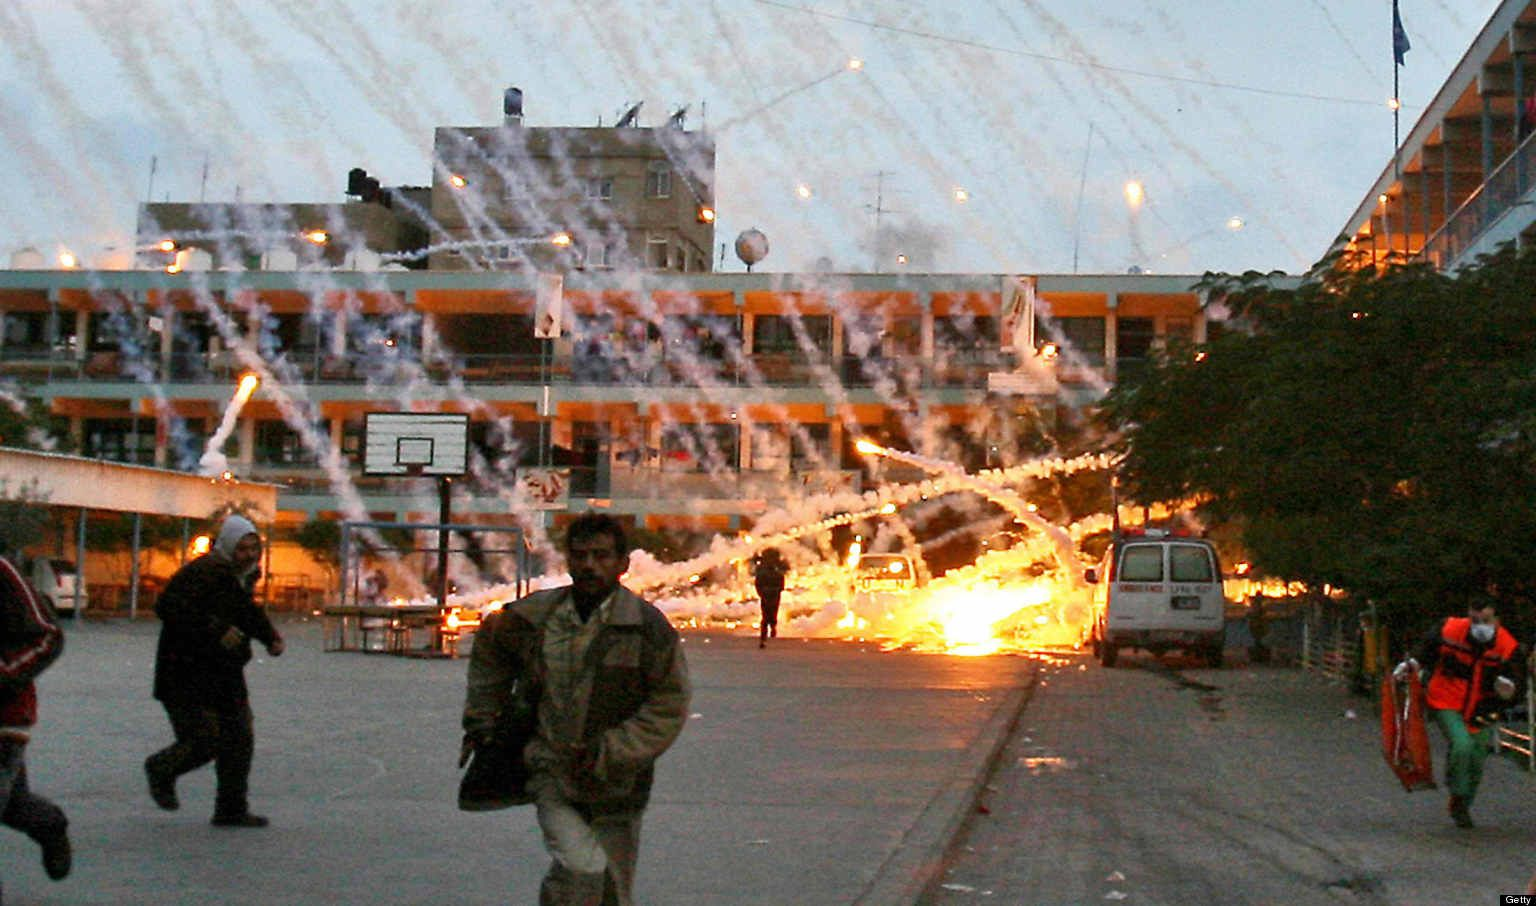 Israel hits Palestinian school with US supplied white-phosphorous munitions.